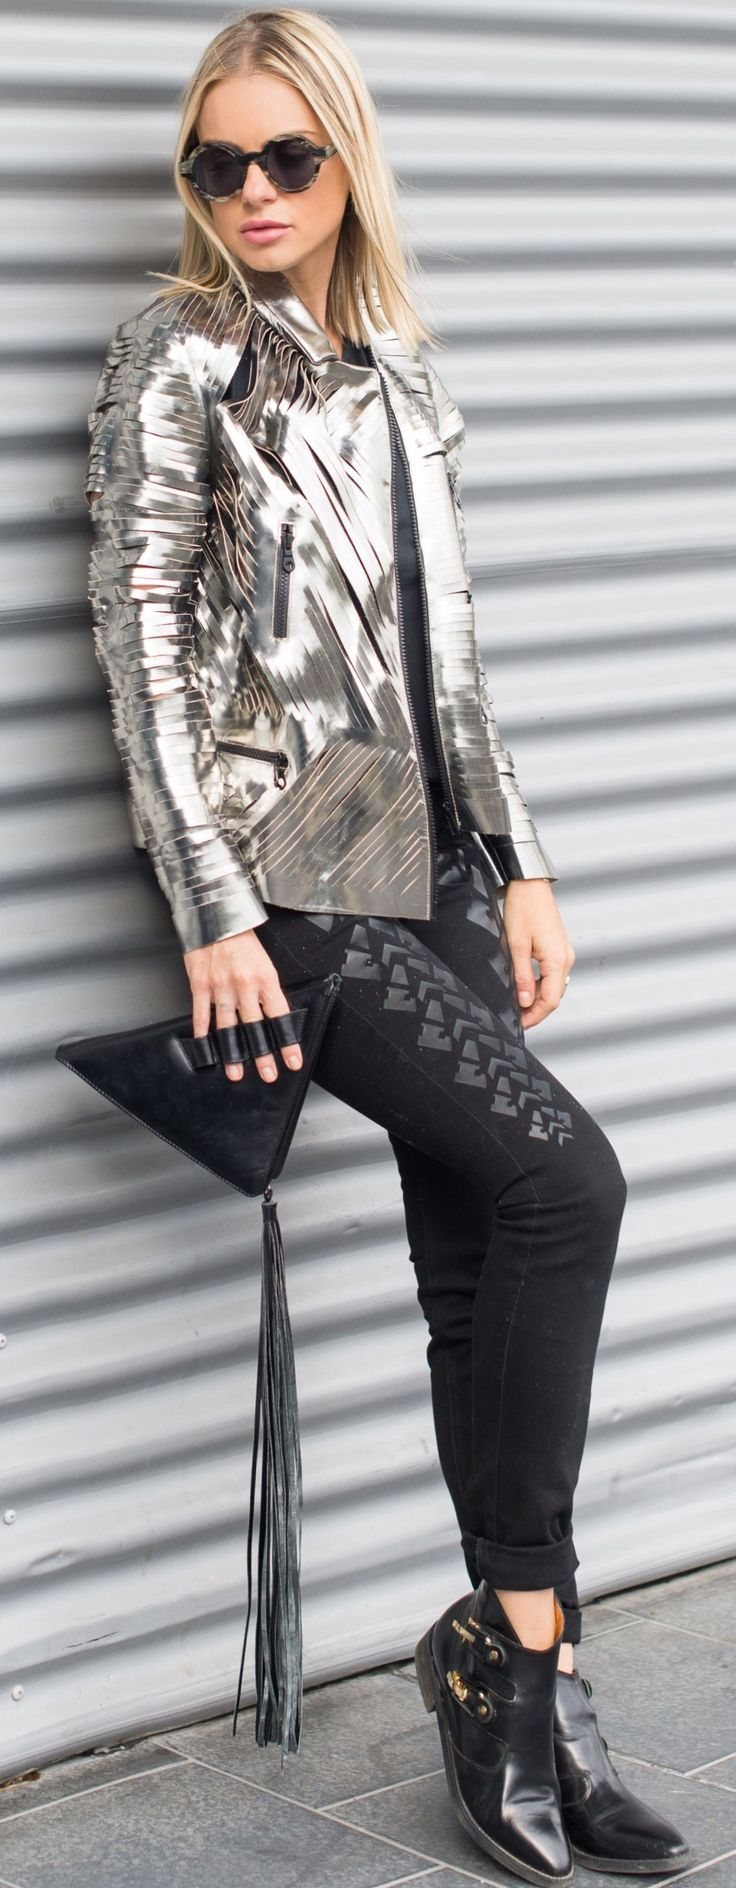 Catalina Grama Metallic Silver Creation Jacket Fall Inspo                                                                             Source